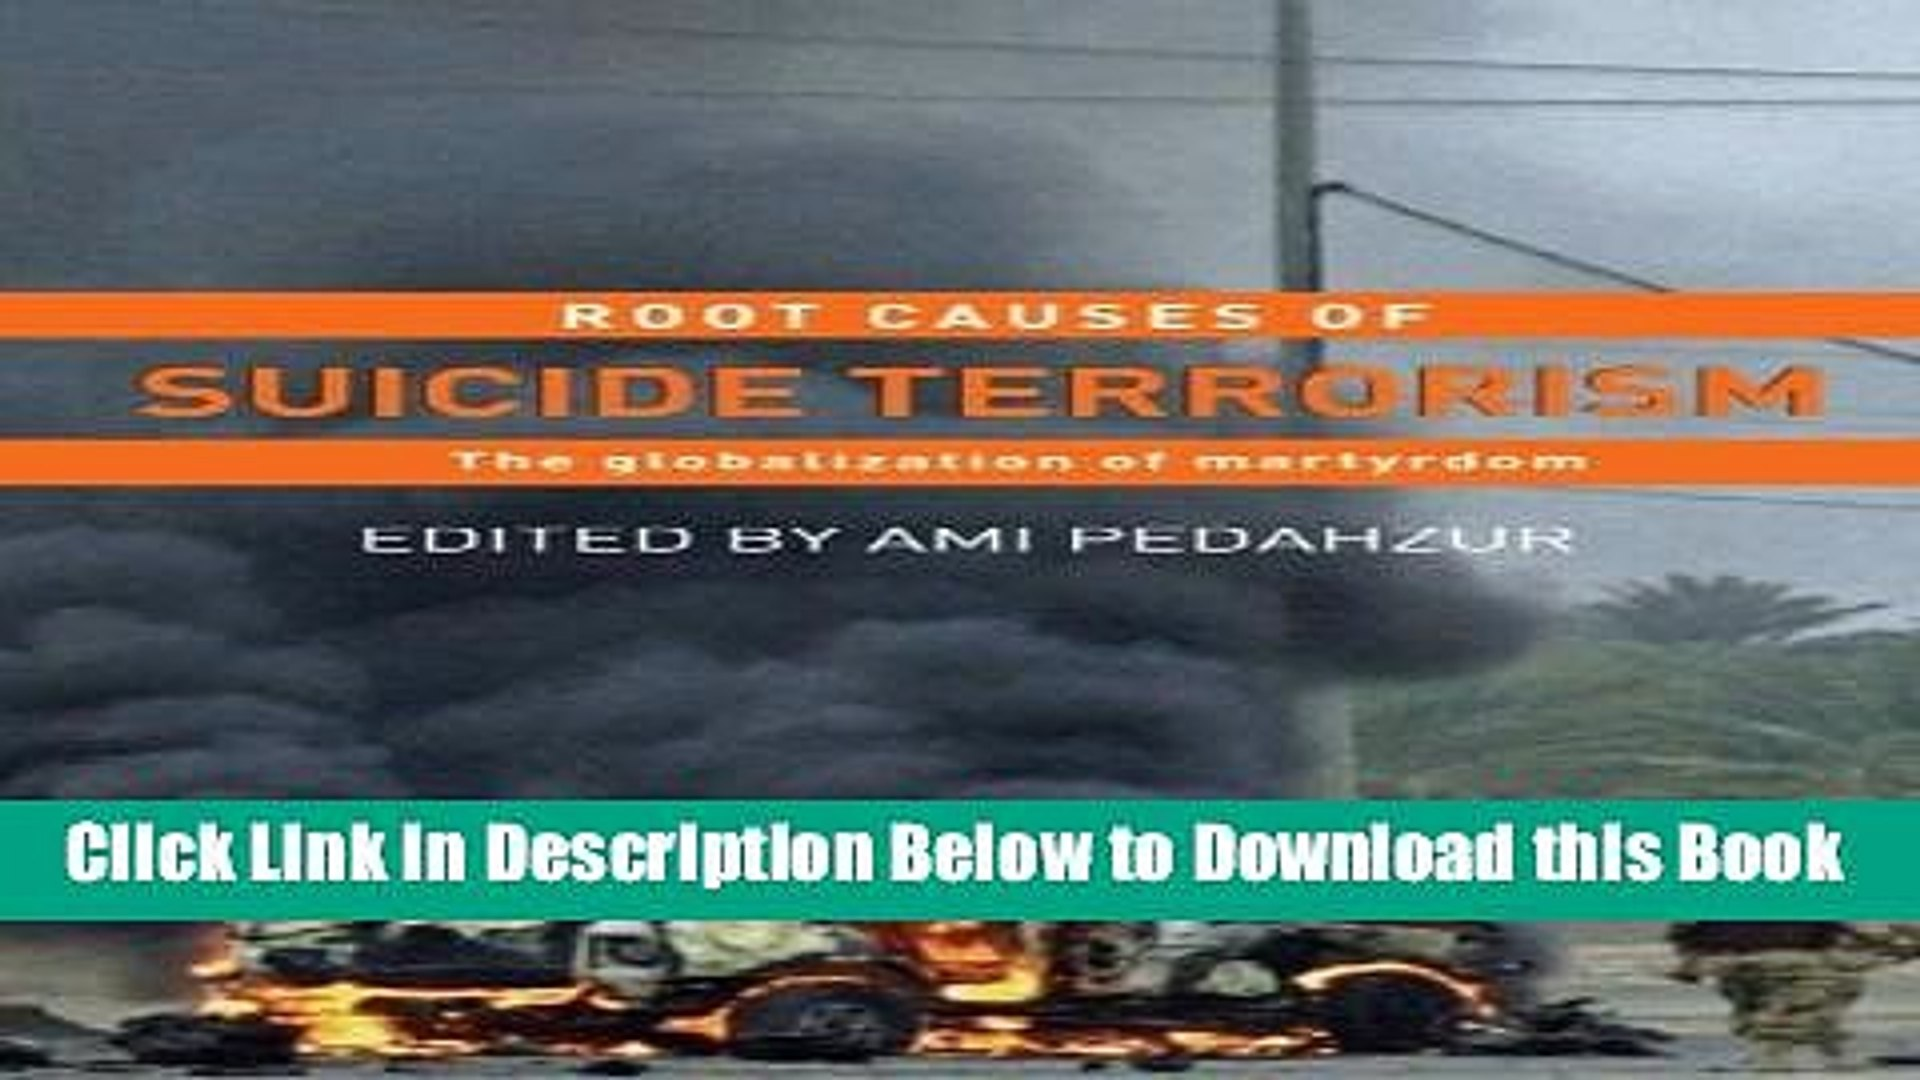 Root Causes of Suicide Terrorism: The Globalization of Martyrdom (Political Violence)